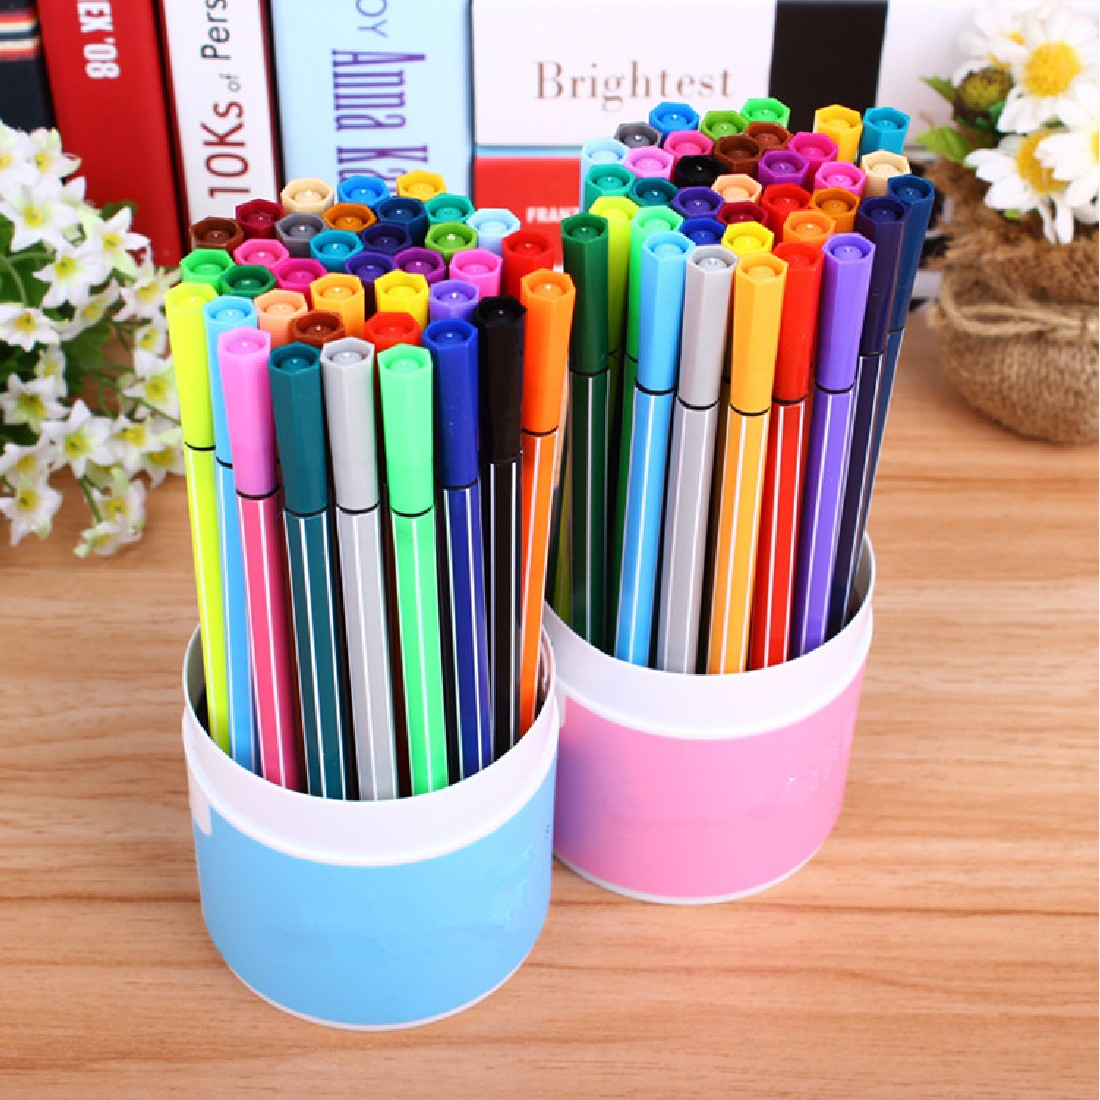 36Pcs Water Color Pen Brush Marker Highlighter Stationery Markers Art Supplies Material For School Kids refillable 1 pc japan kuretake water brush ink pen for water color calligraphy painting illustration pen office stationery